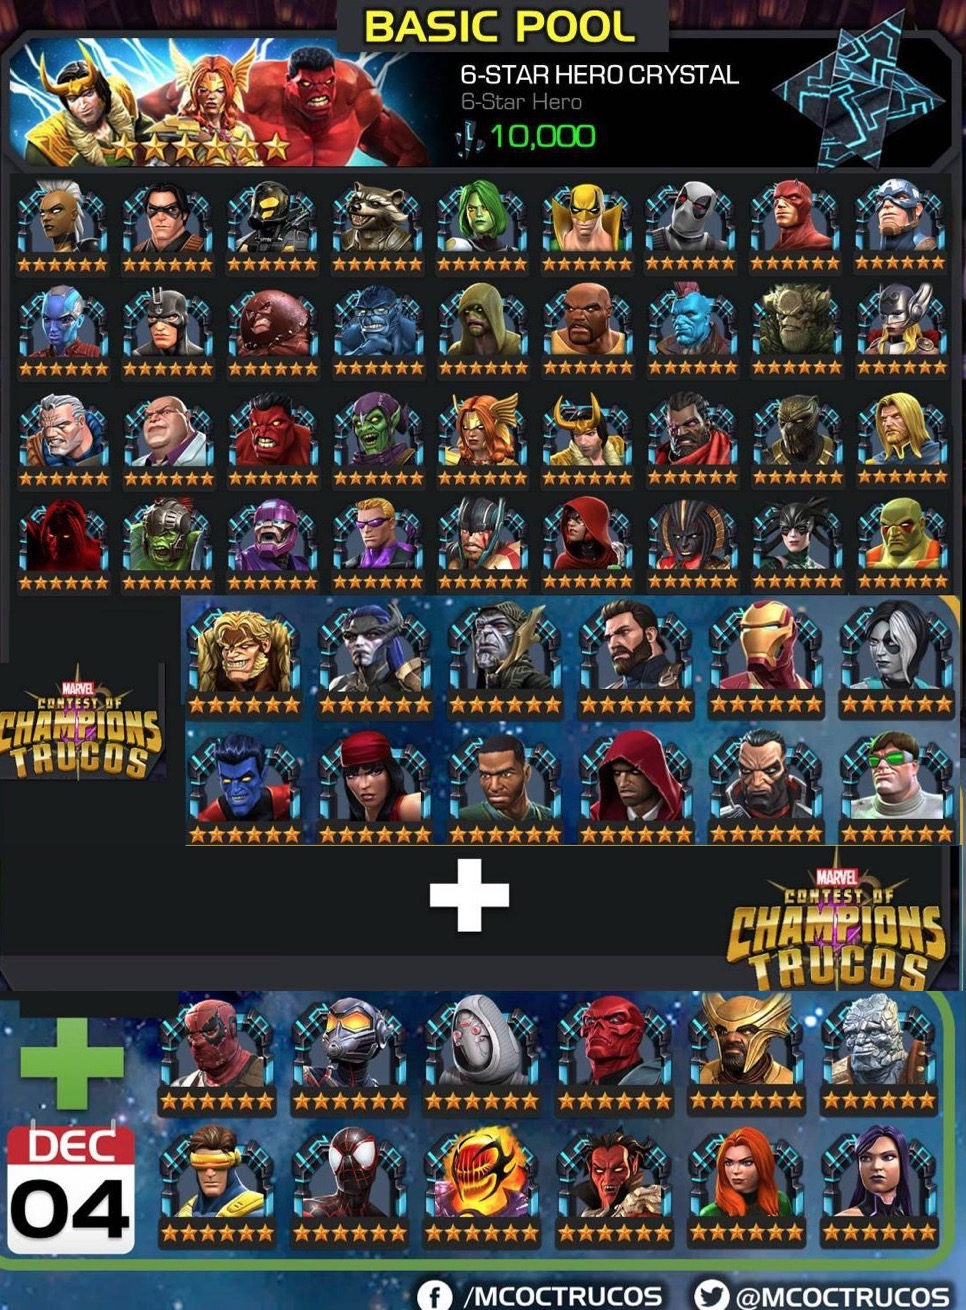 Mcoc Best Science Champs 2019 Available and Upcoming Champions in 6 Star Basic Pool?   MCOC Guide